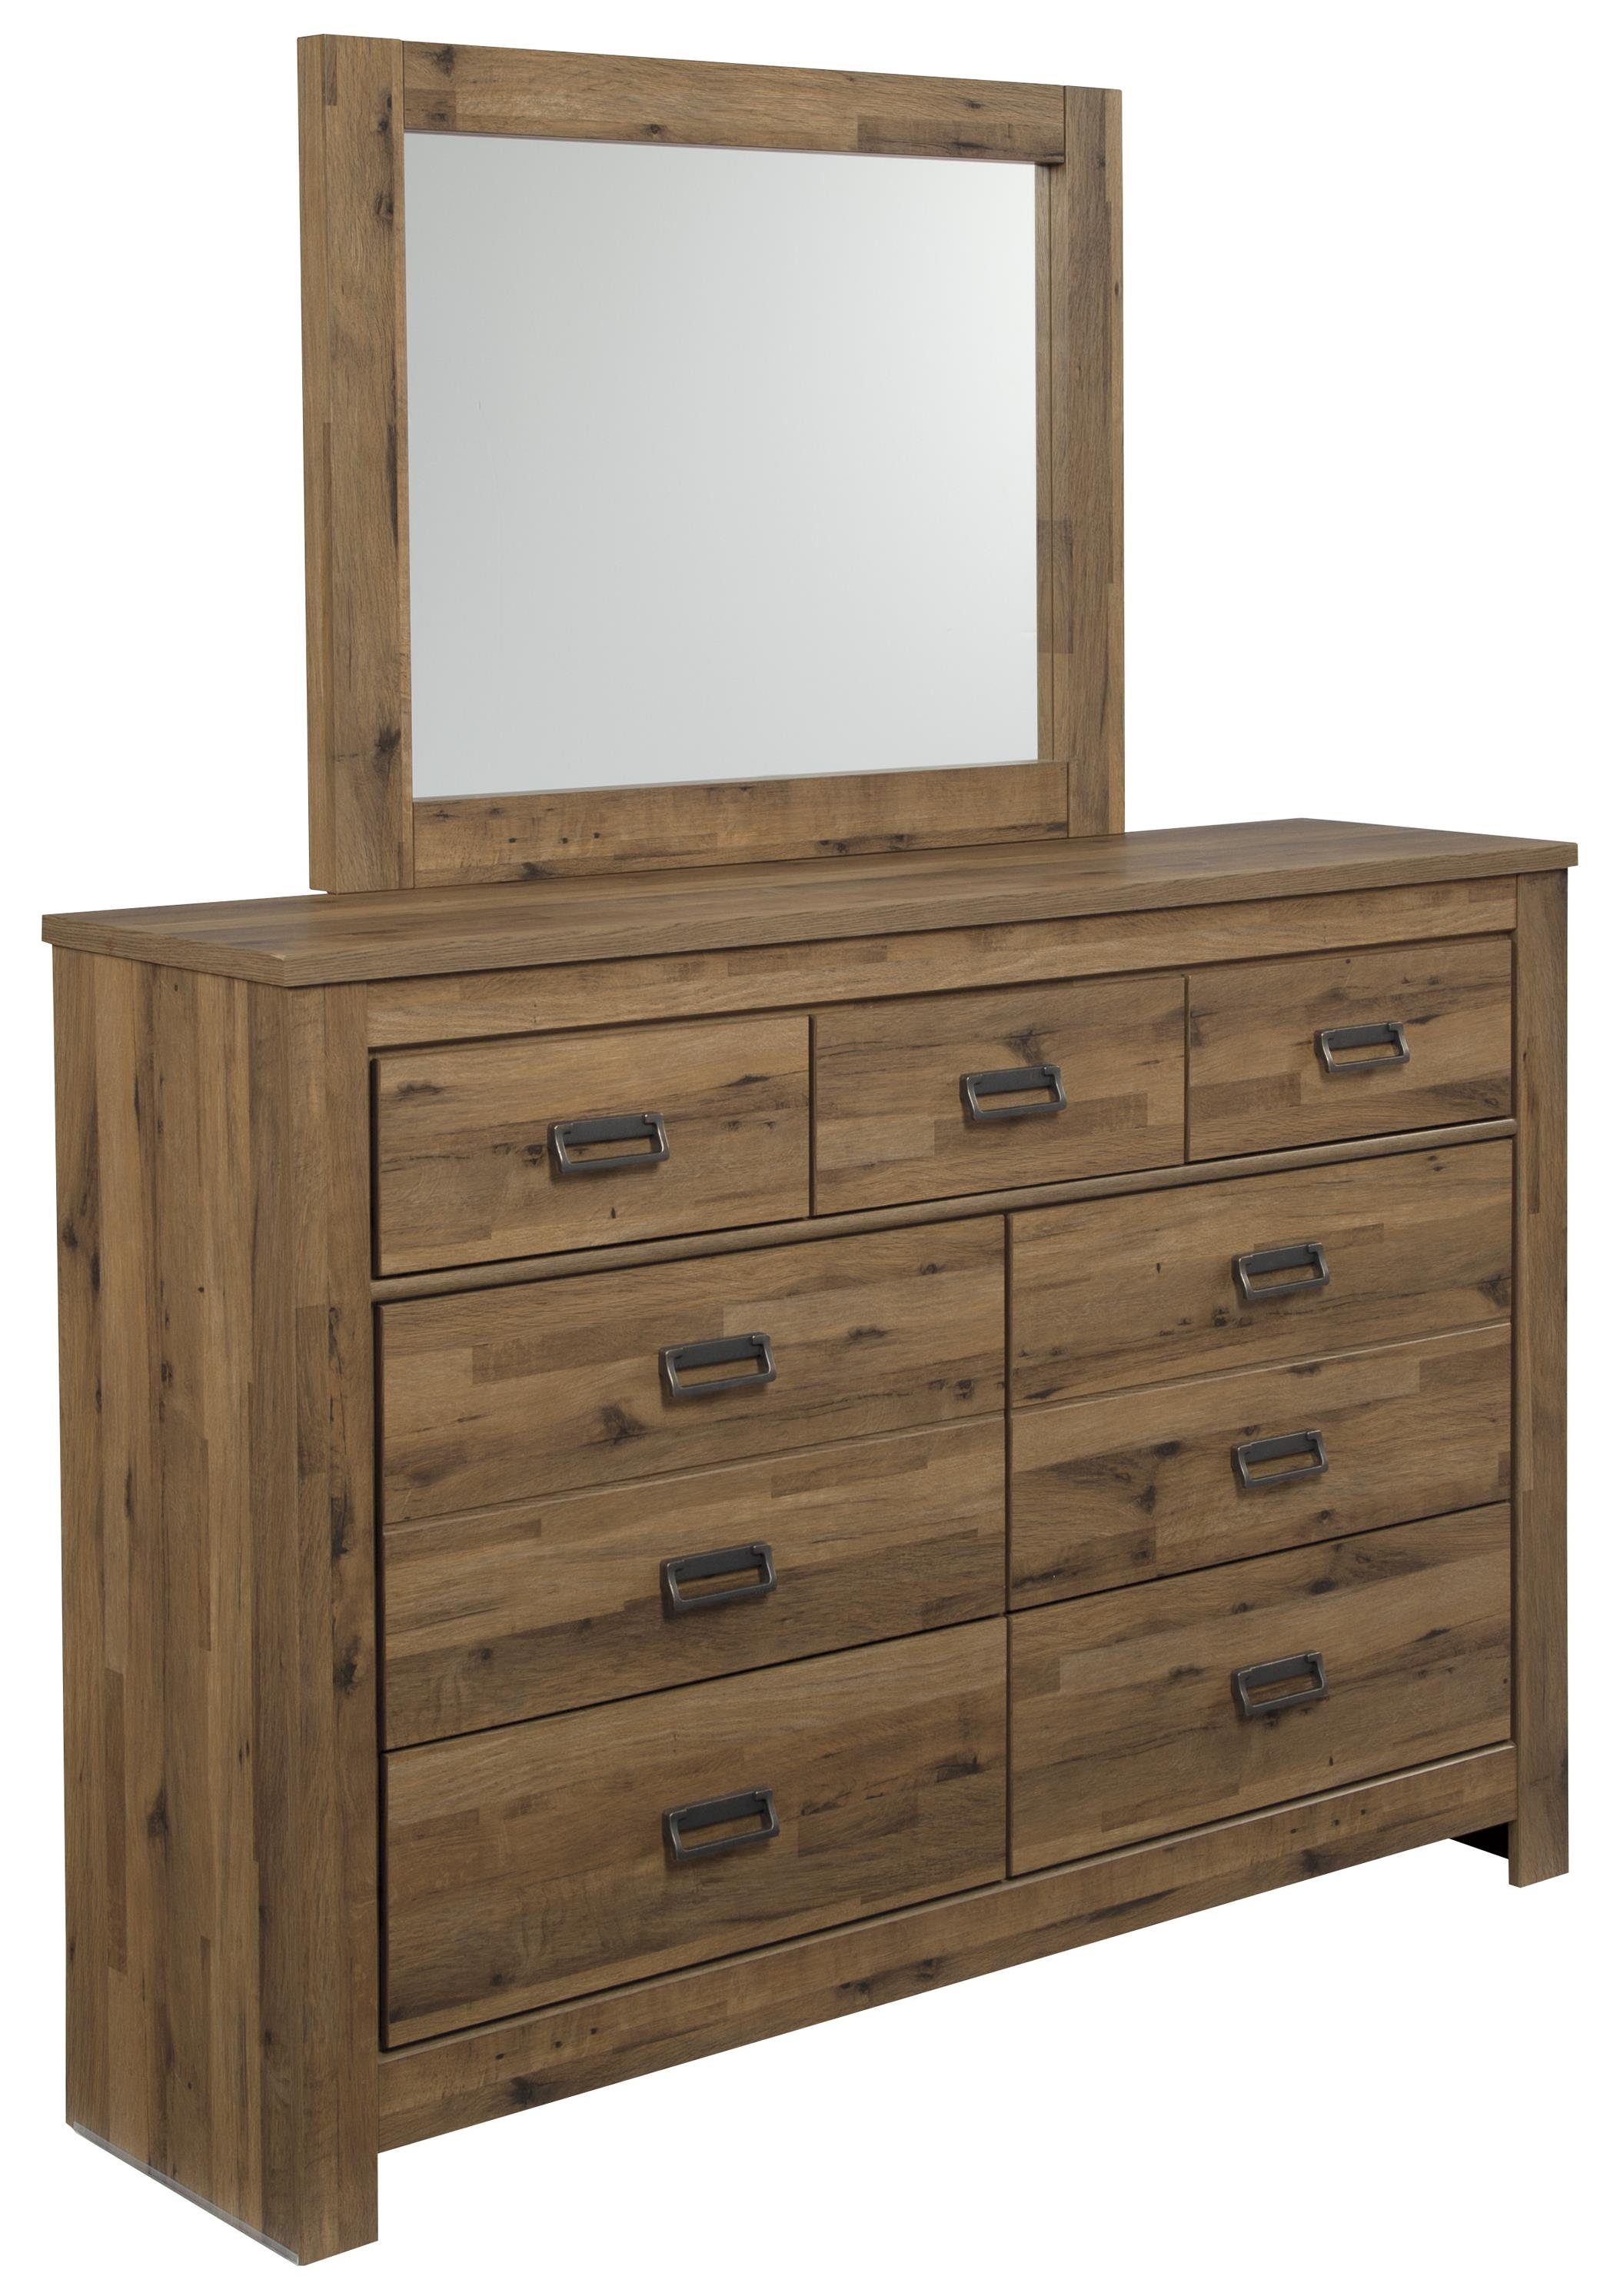 Signature Design by Ashley Cinrey Dresser & Mirror - Item Number: B369-31+36